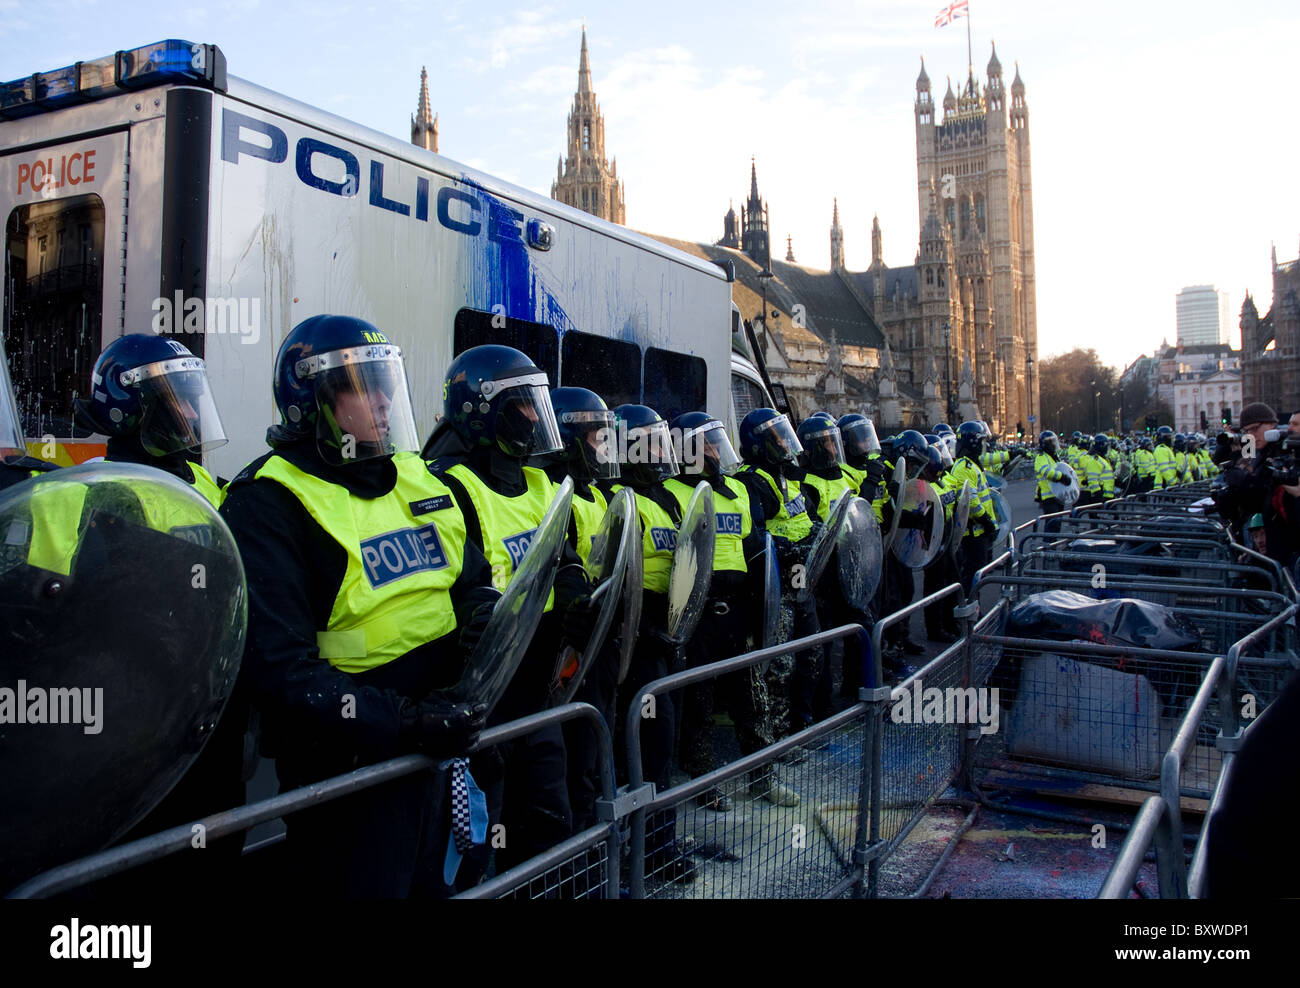 riot police cordon off the houses of parliament during student protests - Stock Image